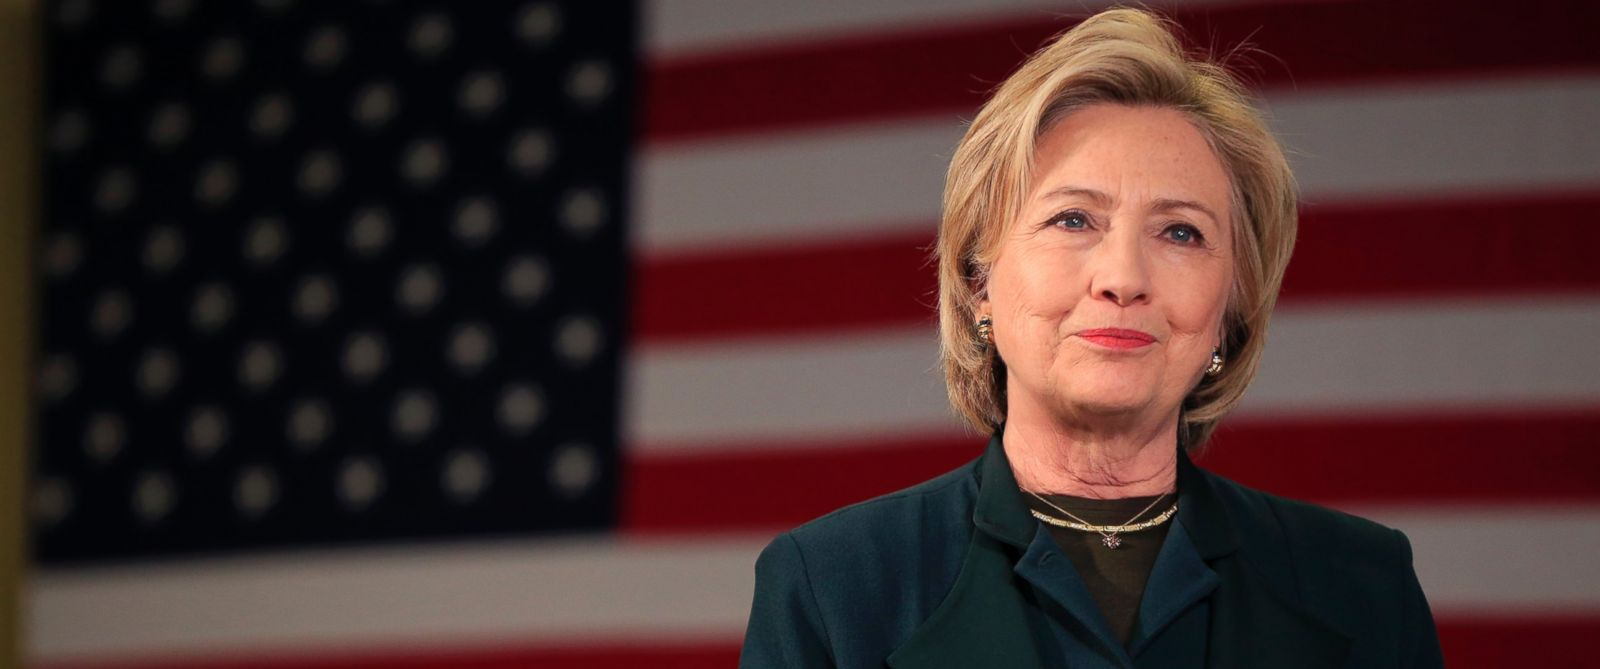 Meet Hillary Clinton Everything You Need To Know And